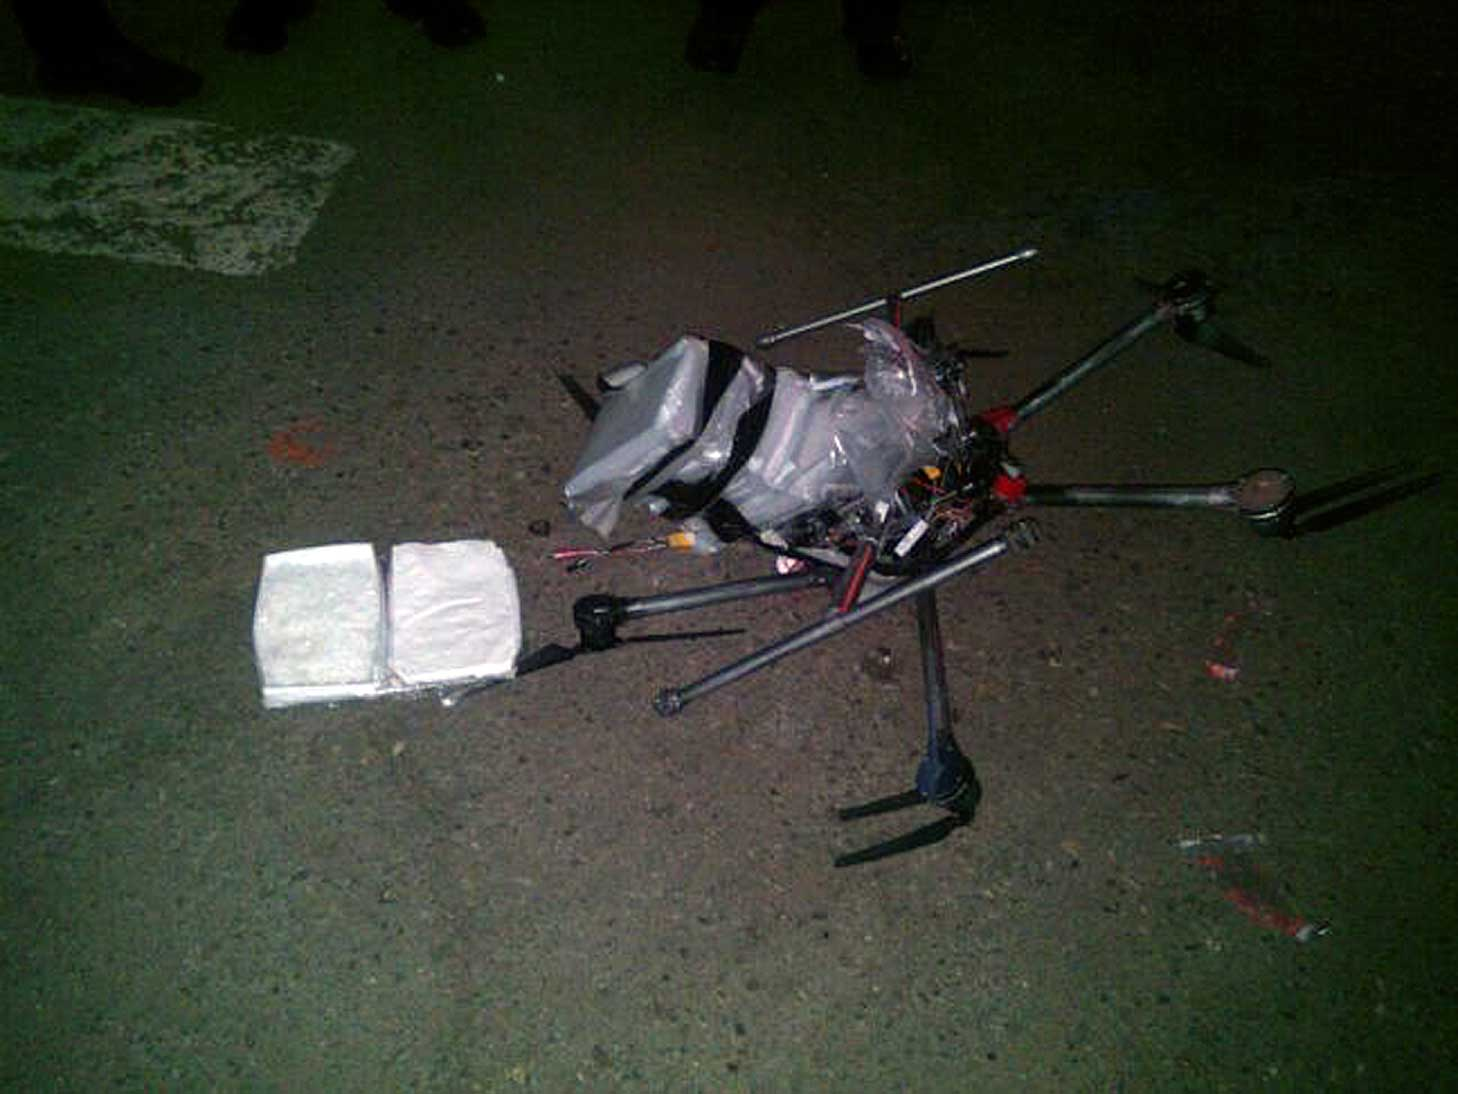 A drone loaded with packages containing methamphetamine lies on the ground after it crashed into a supermarket parking lot in the Mexican city of Tijuana on Jan. 20, 2015